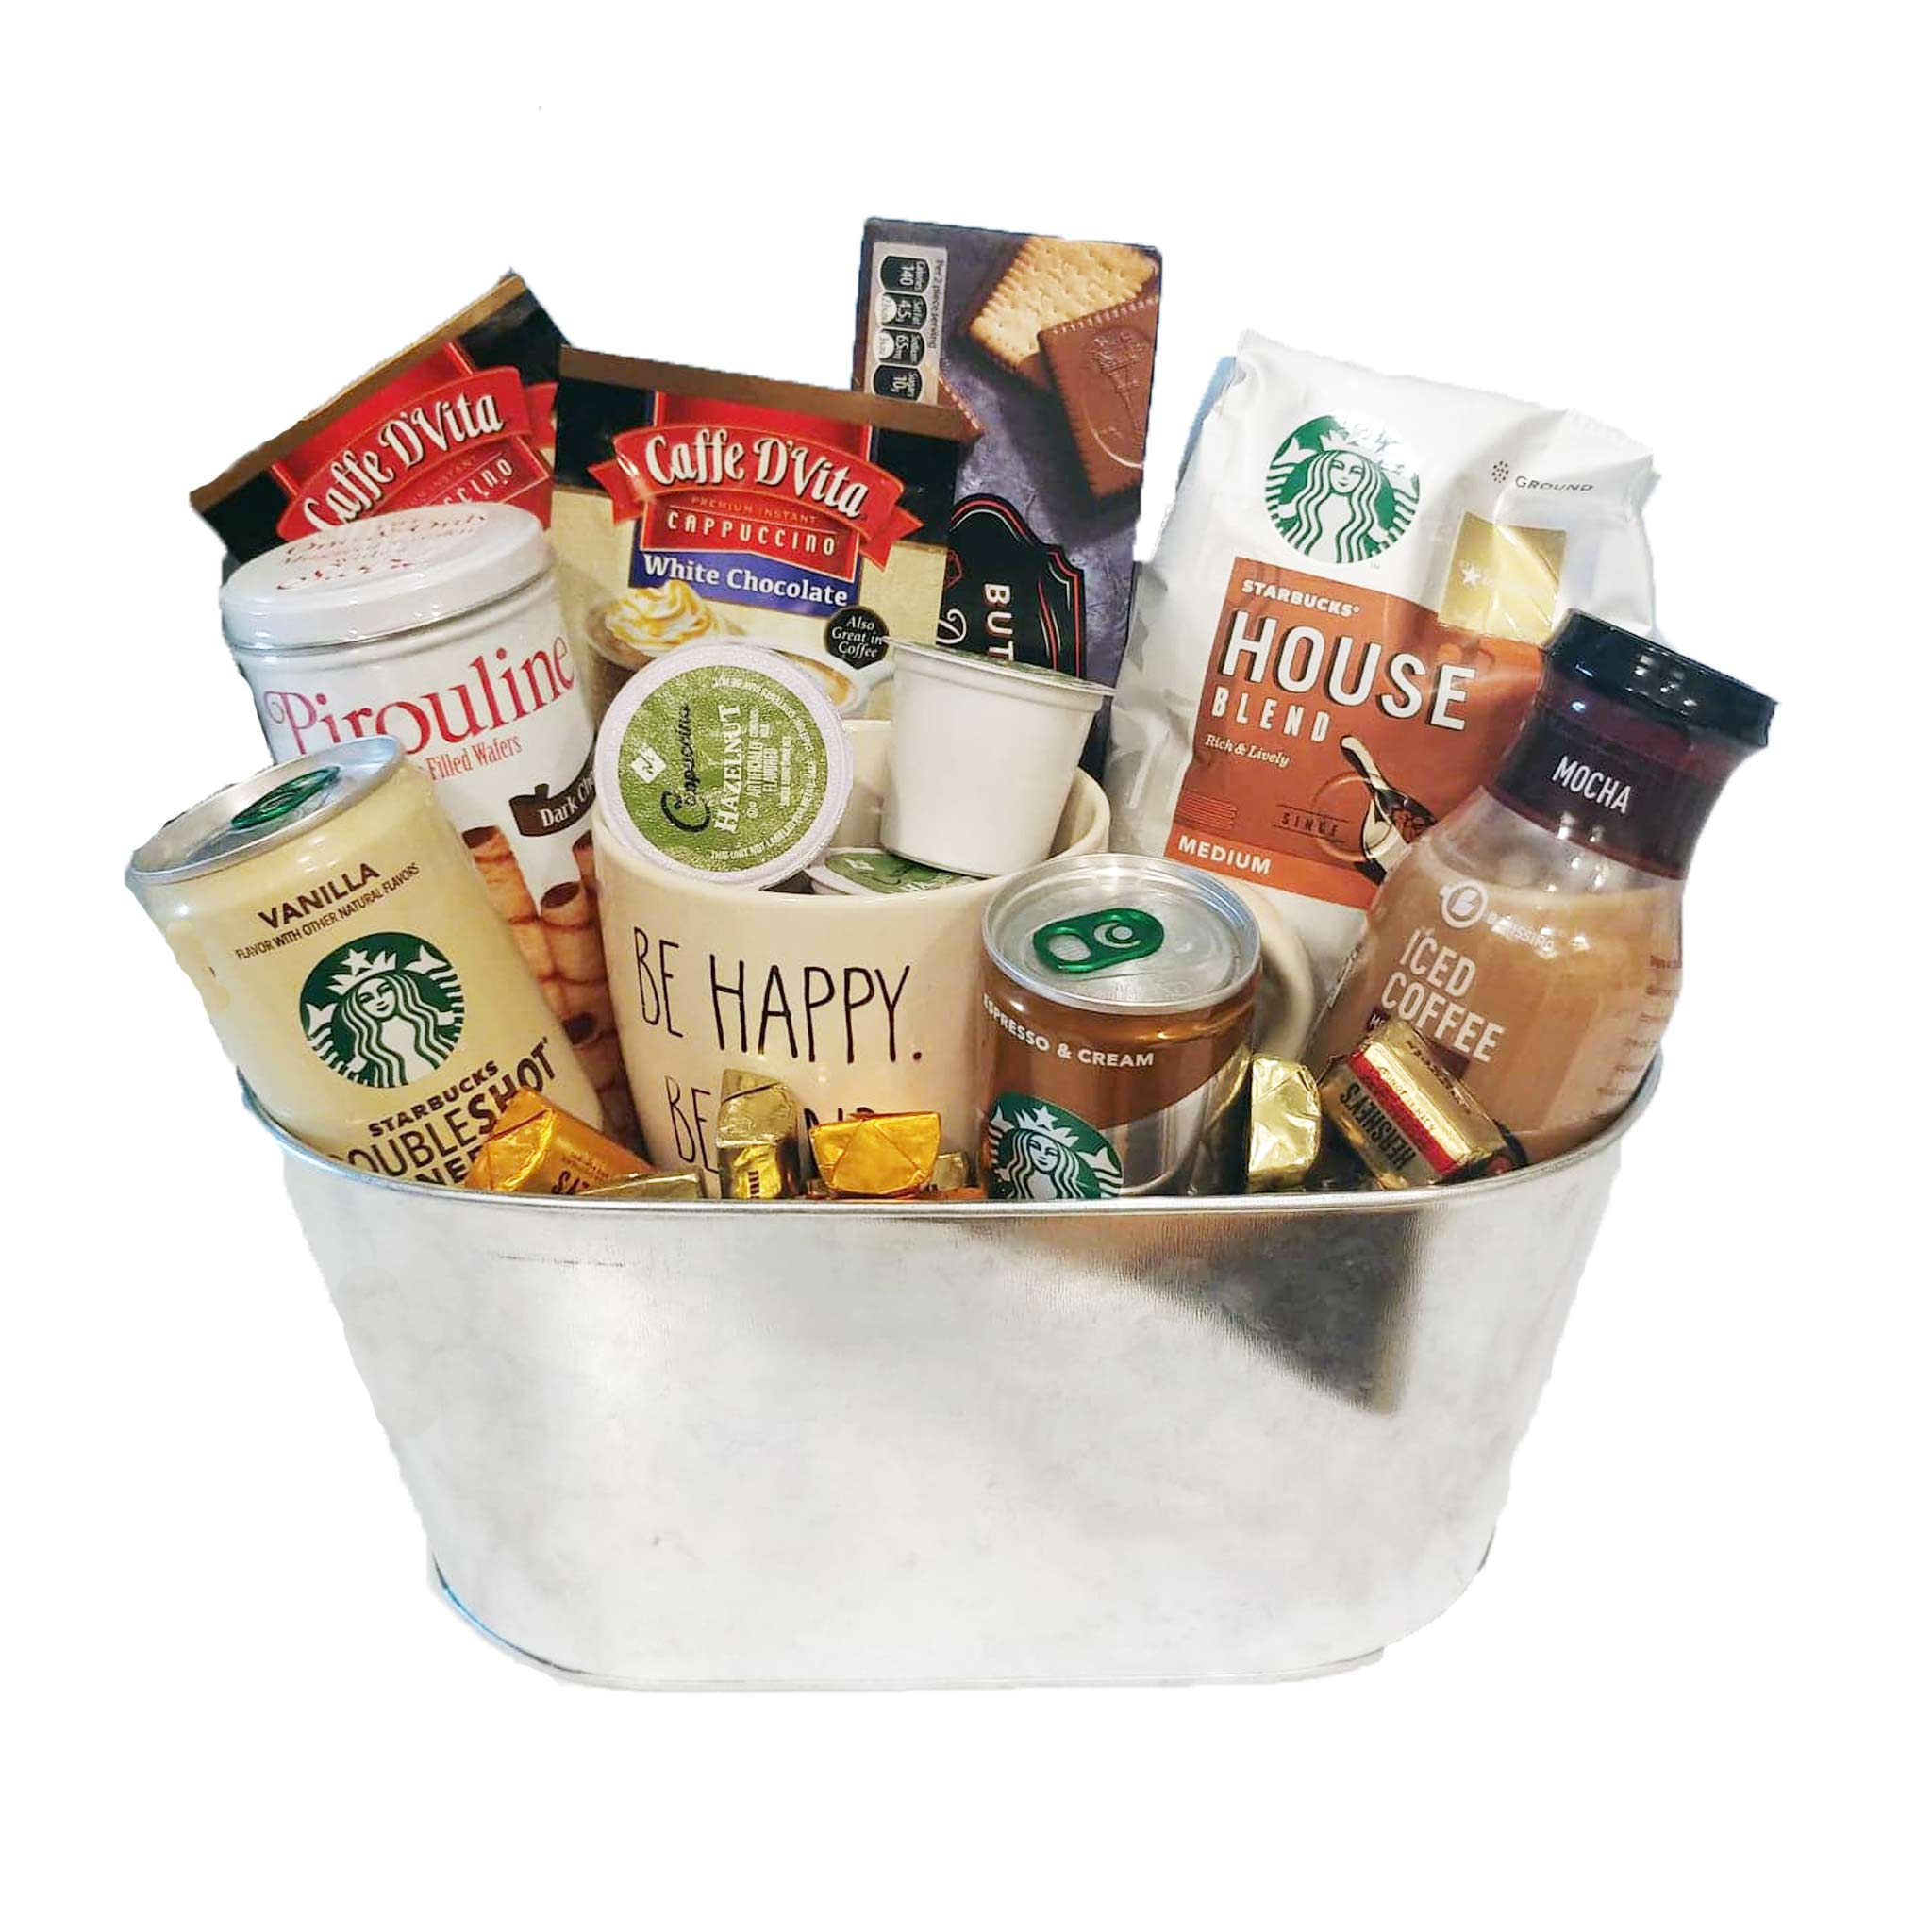 Starbucks Coffee and Treats Gift Basket